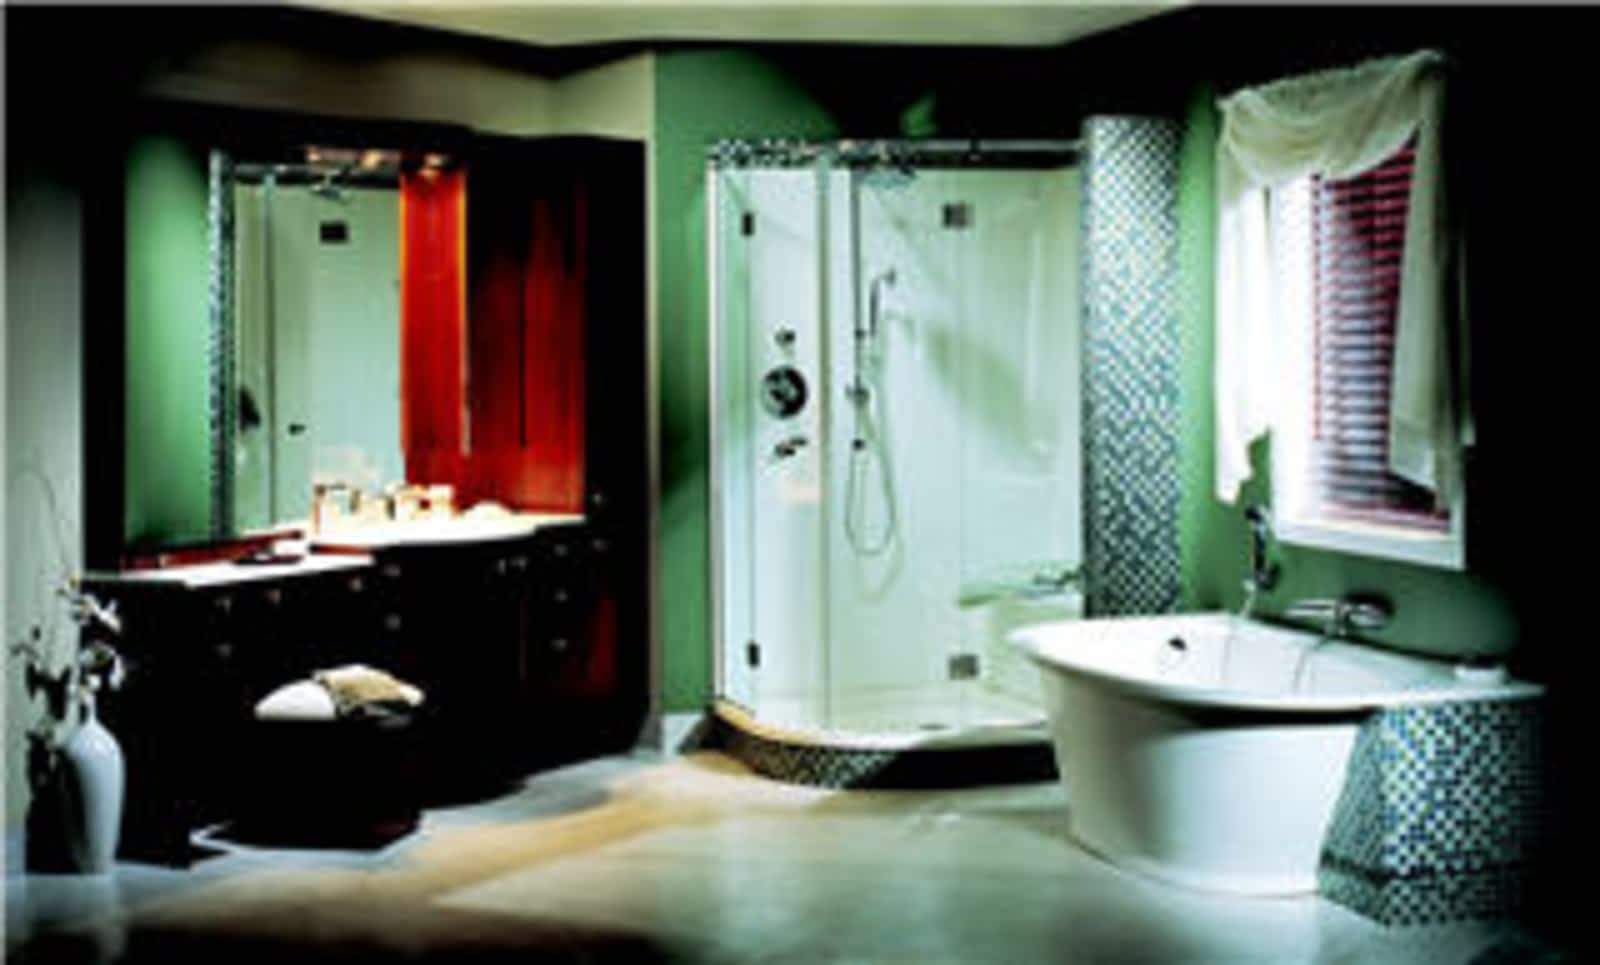 Outstanding Kohler Villager K 715 Photos - Bathtub Ideas - dilata.info